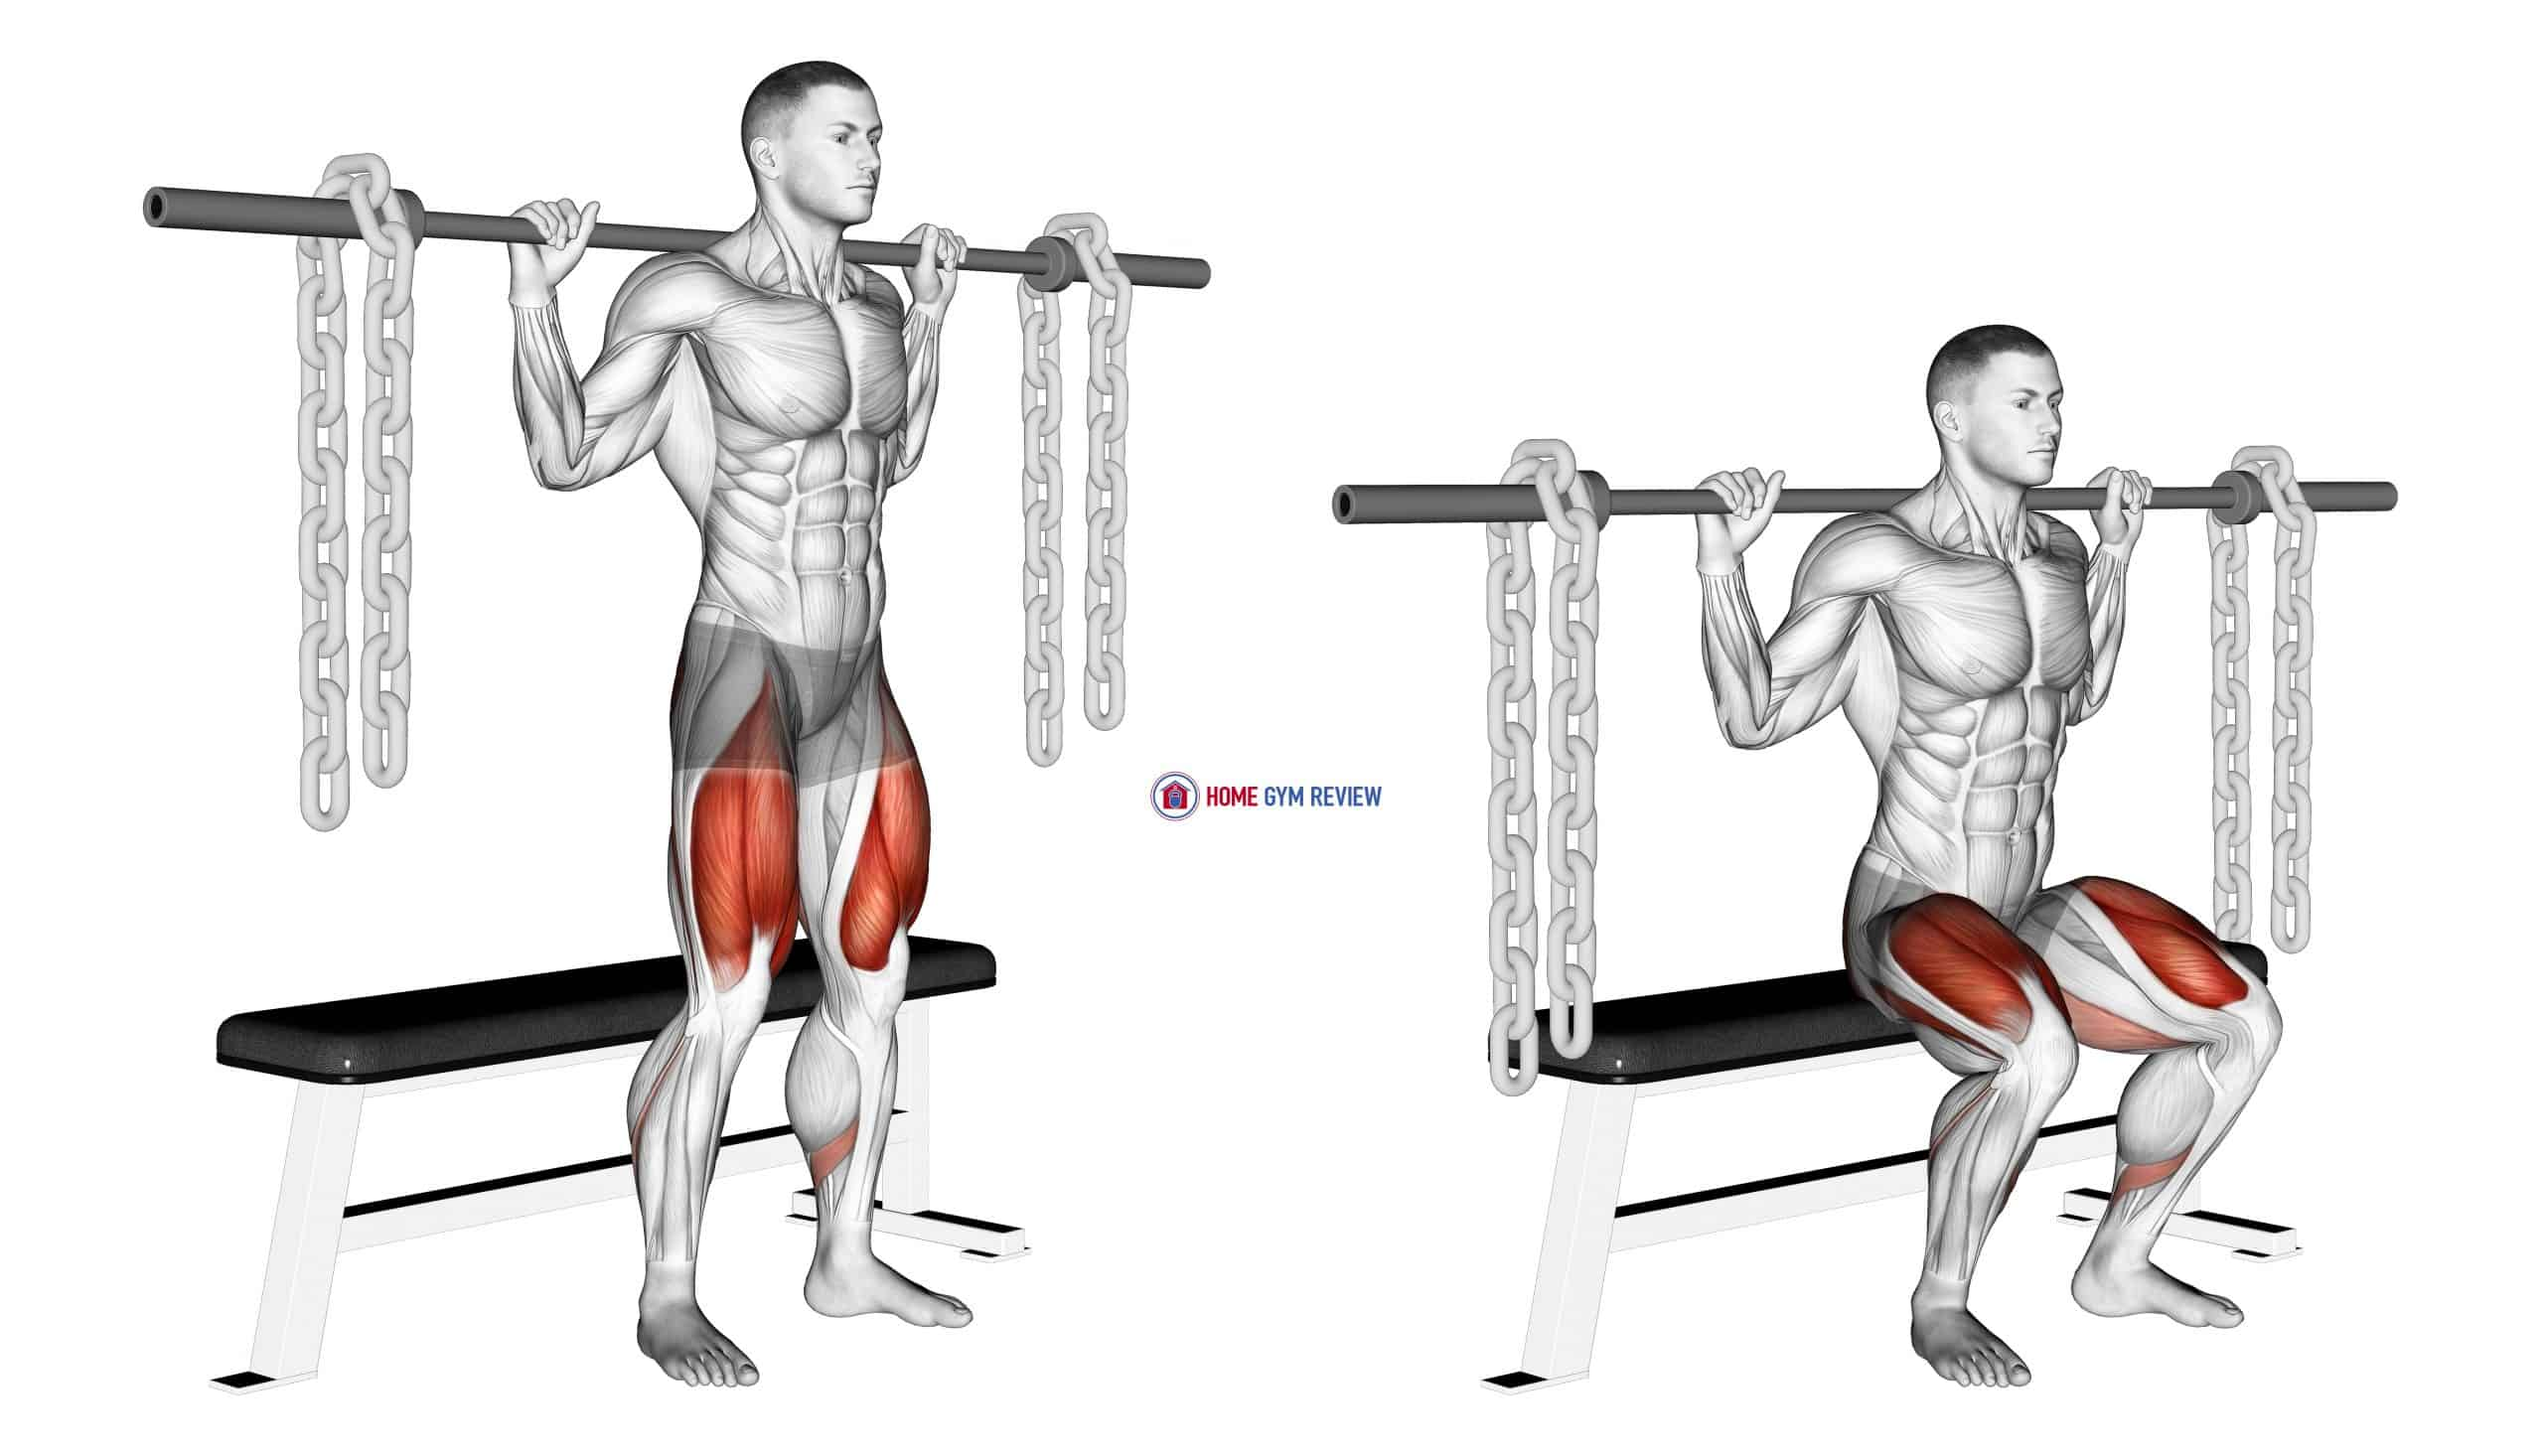 Barbell Bench Squat (With chains)